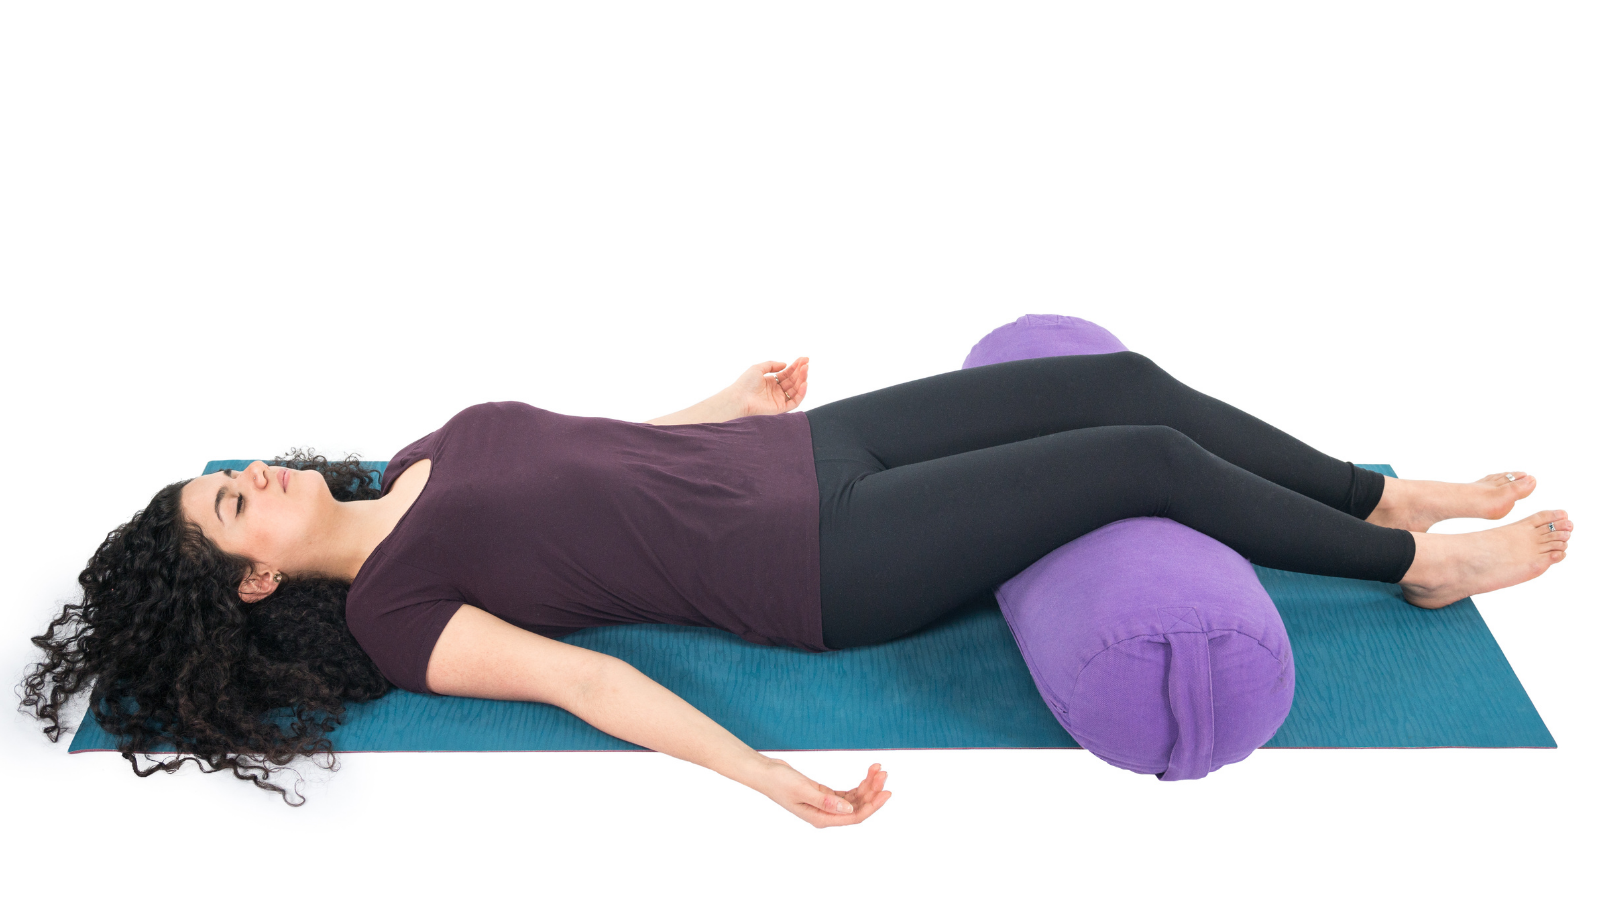 Corpse Pose or Savasana practiced with Bolster supporting the knees